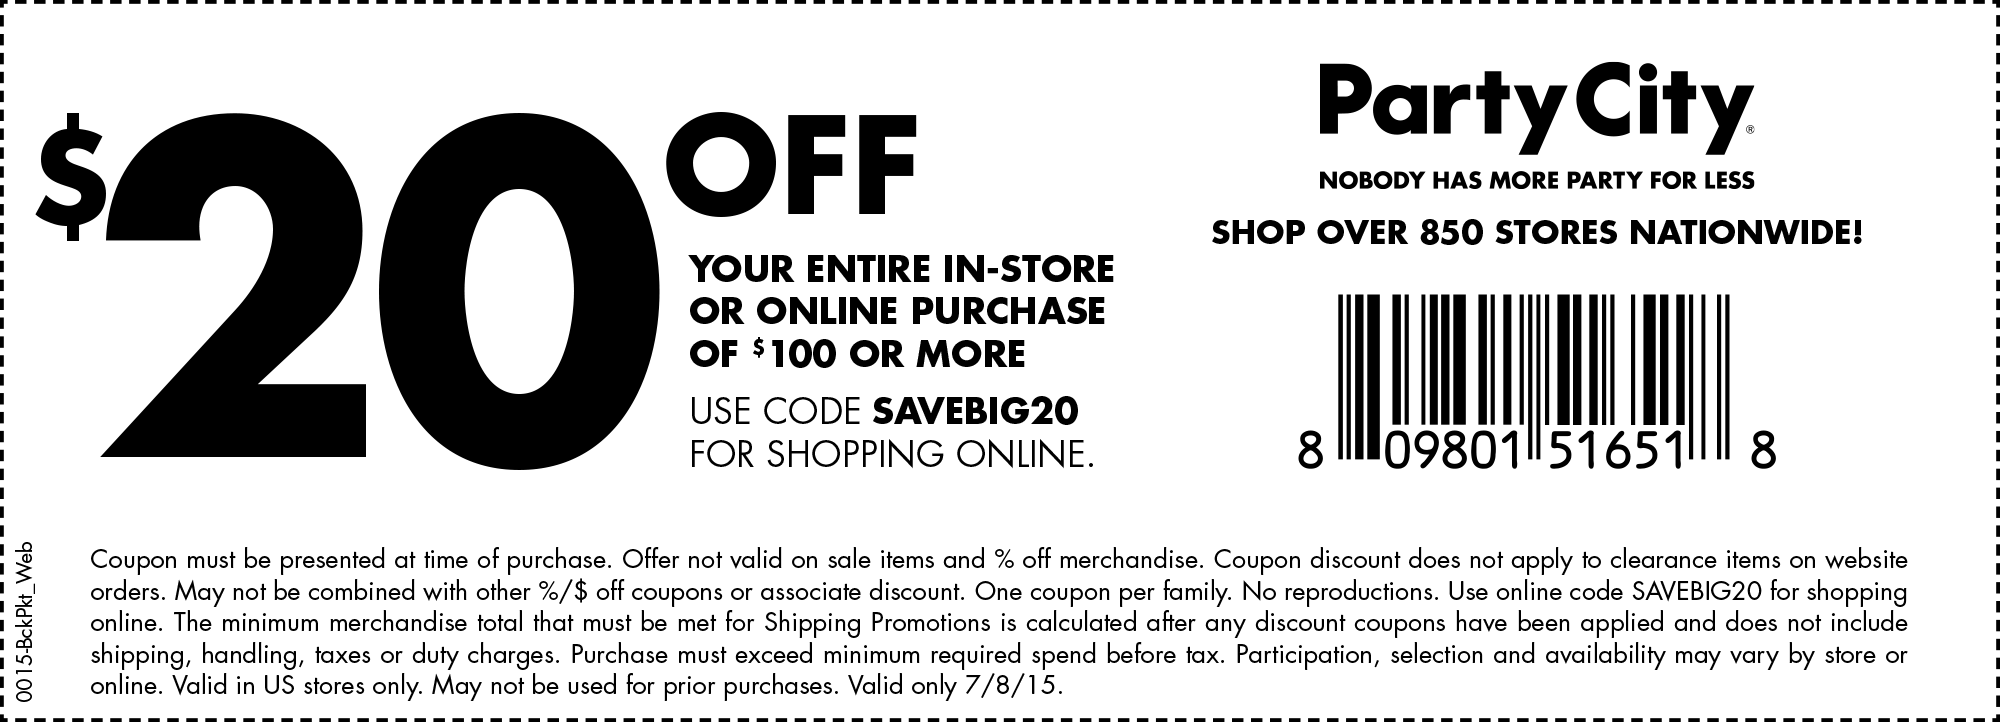 Party City Coupon March 2017 $20 off $100 today at Party City, or online via promo code SAVEBIG20